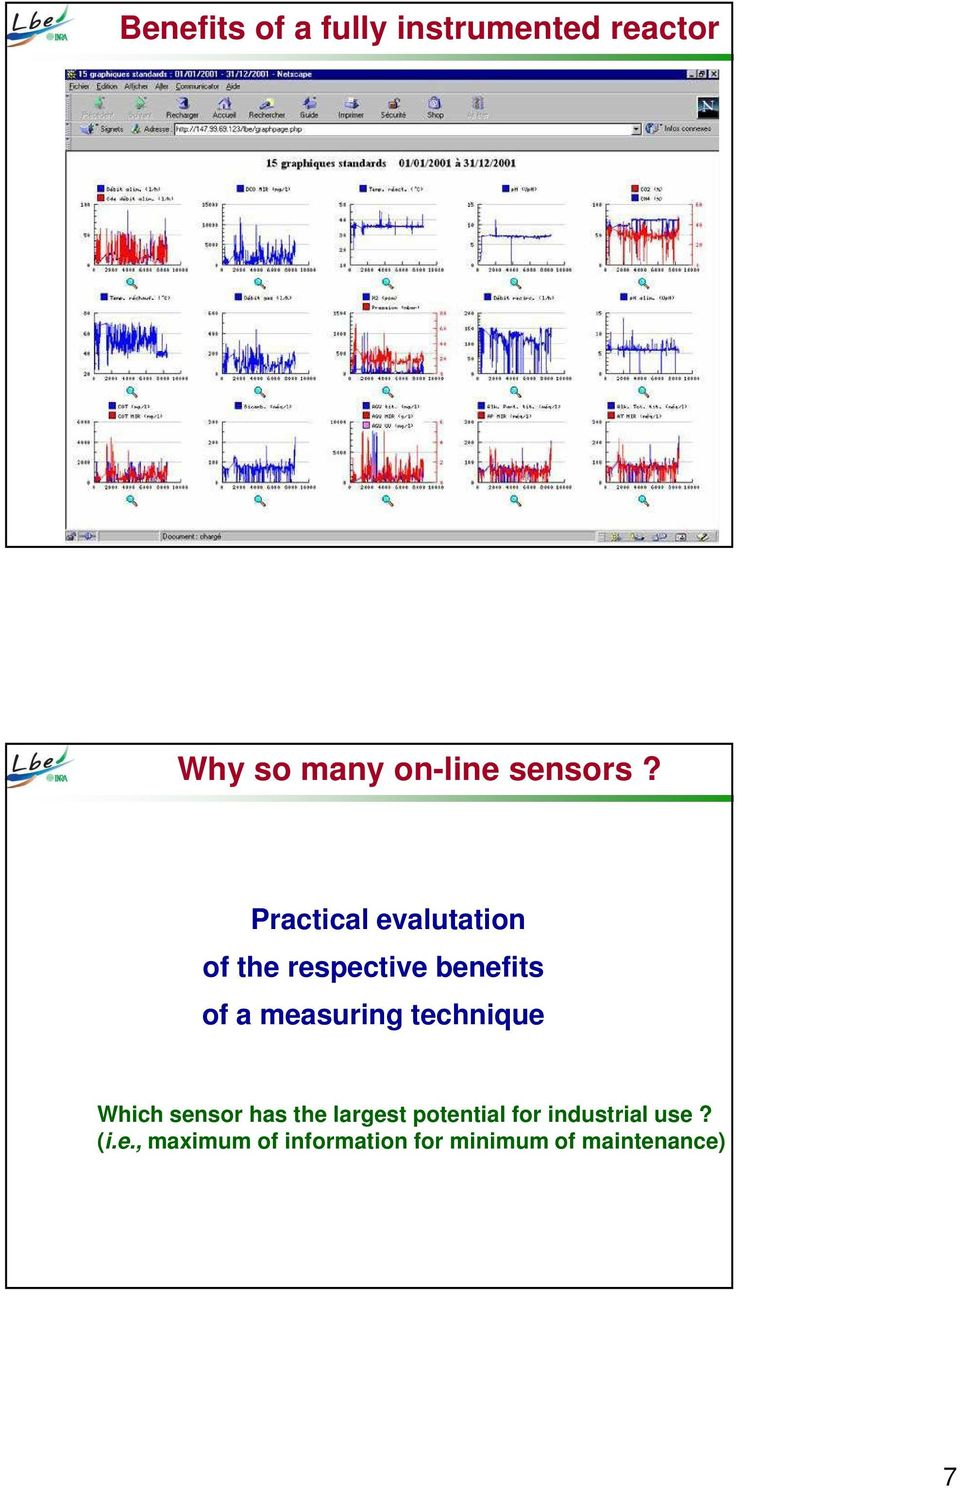 Practical evalutation of the respective benefits of a measuring